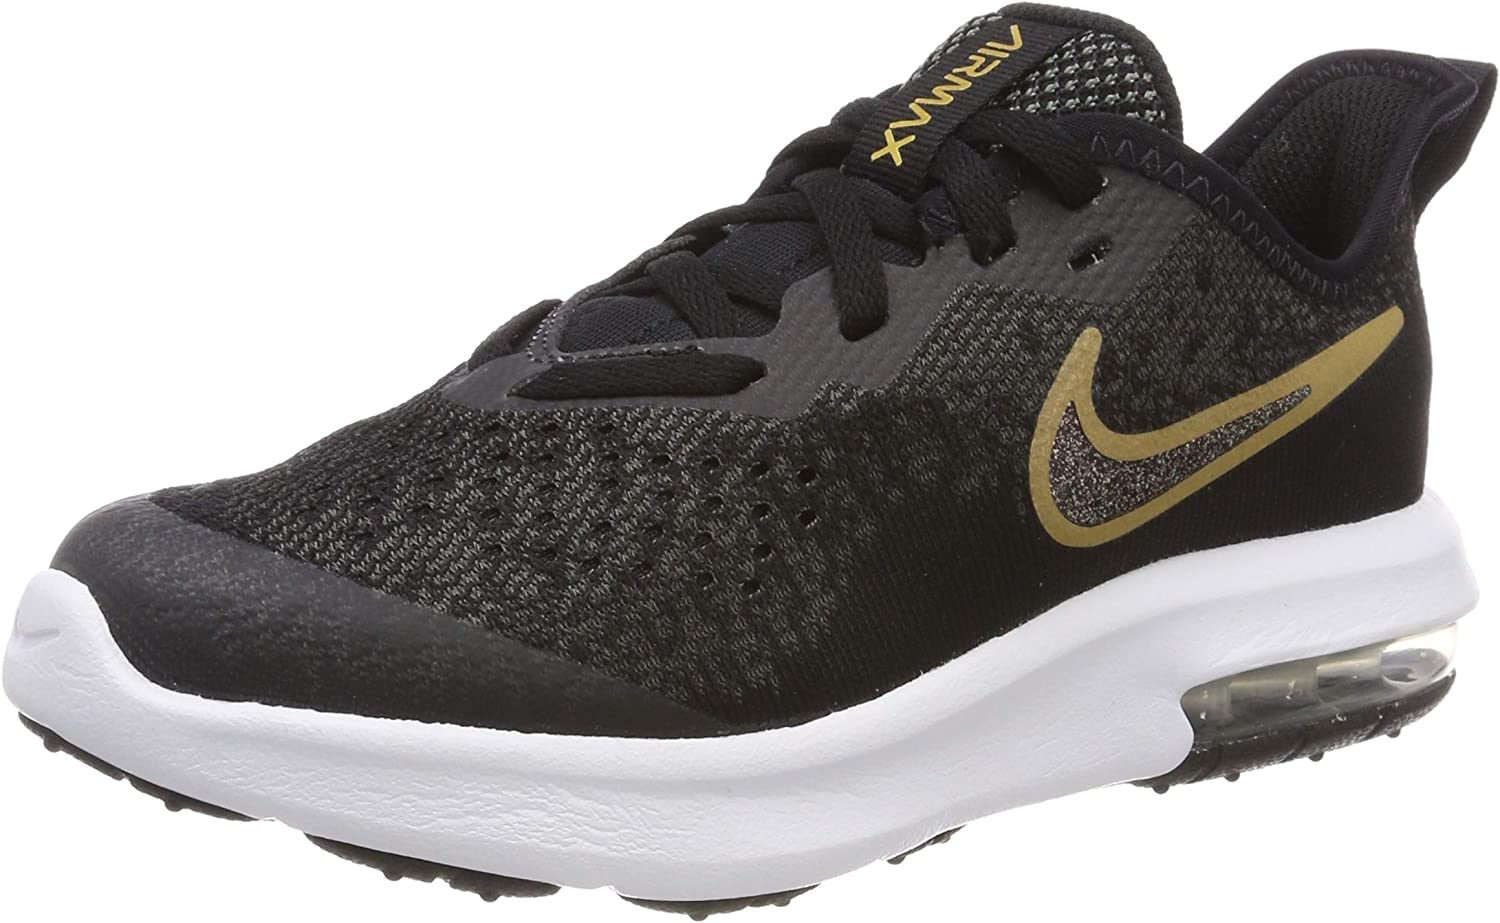 Nike Mdchen Air Max Sequent 4 Sh (Ps) Fitnessschuhe